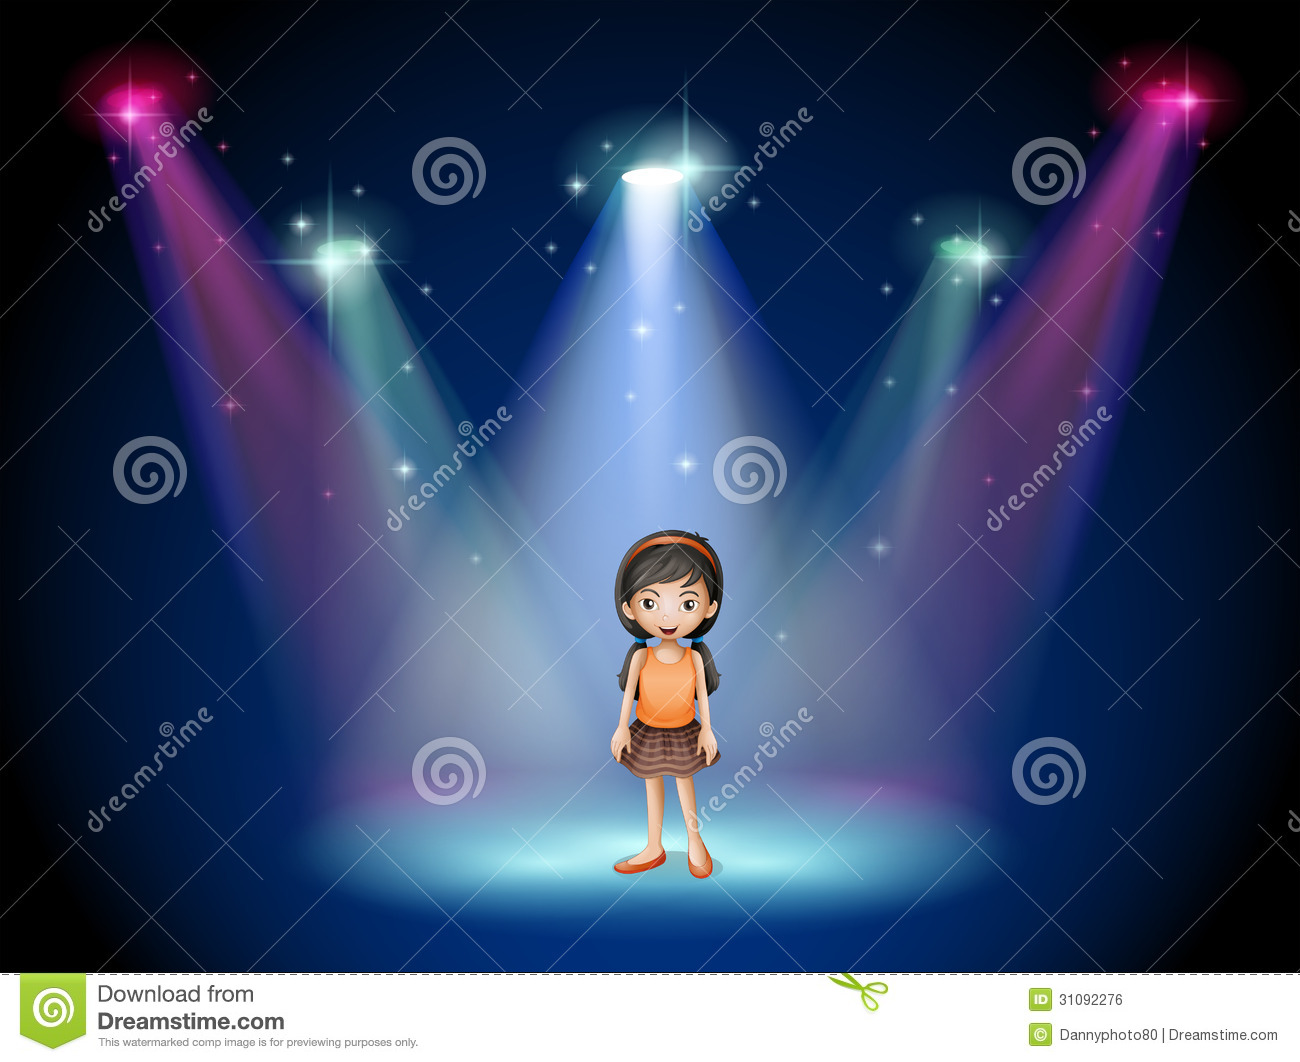 a smiling girl standing on the stage with spotlights